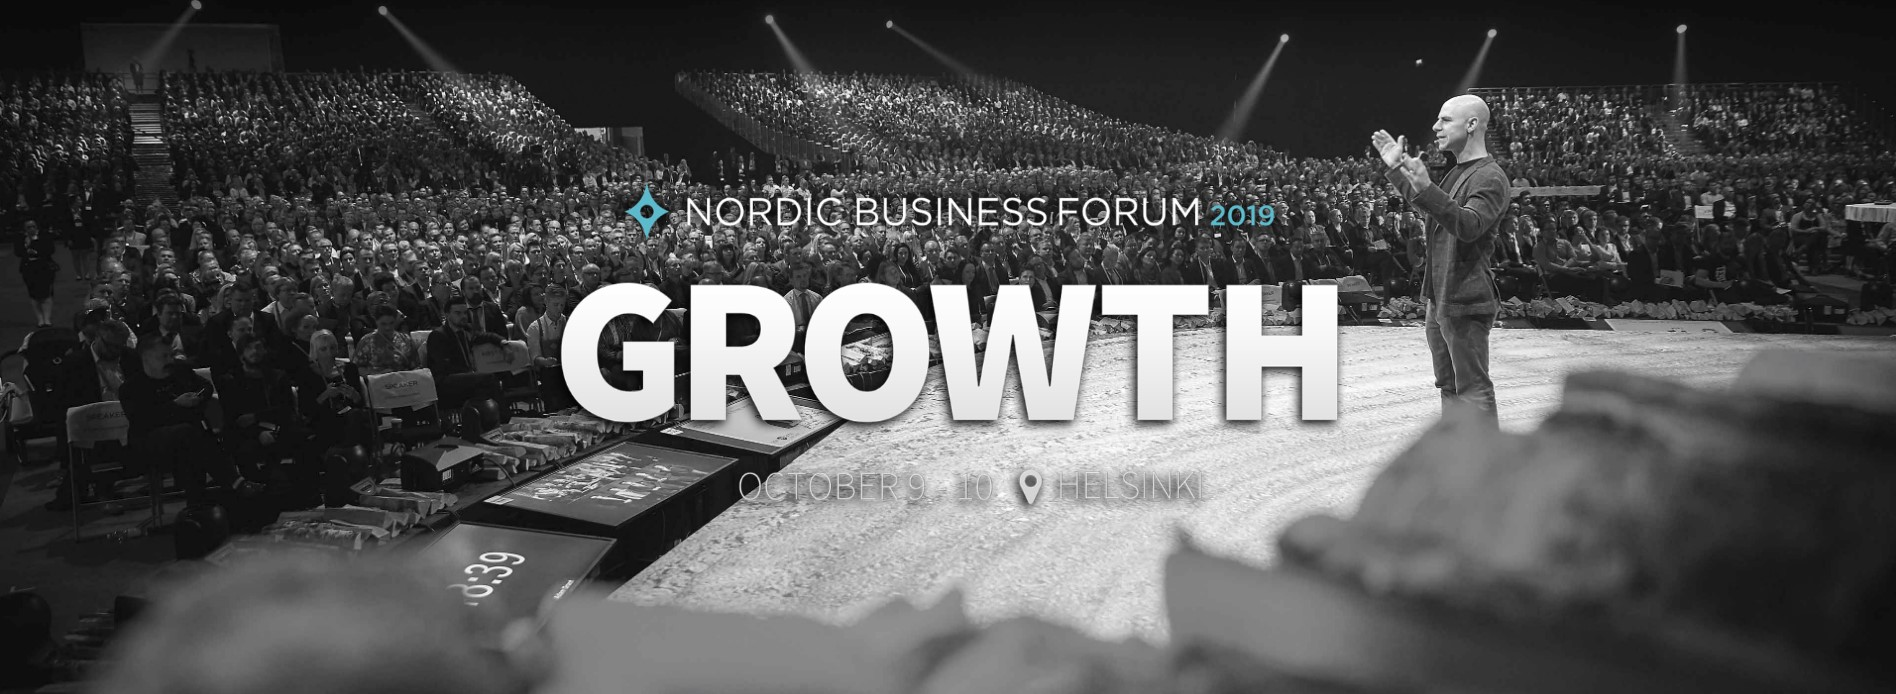 Nordic Business Forum 2019